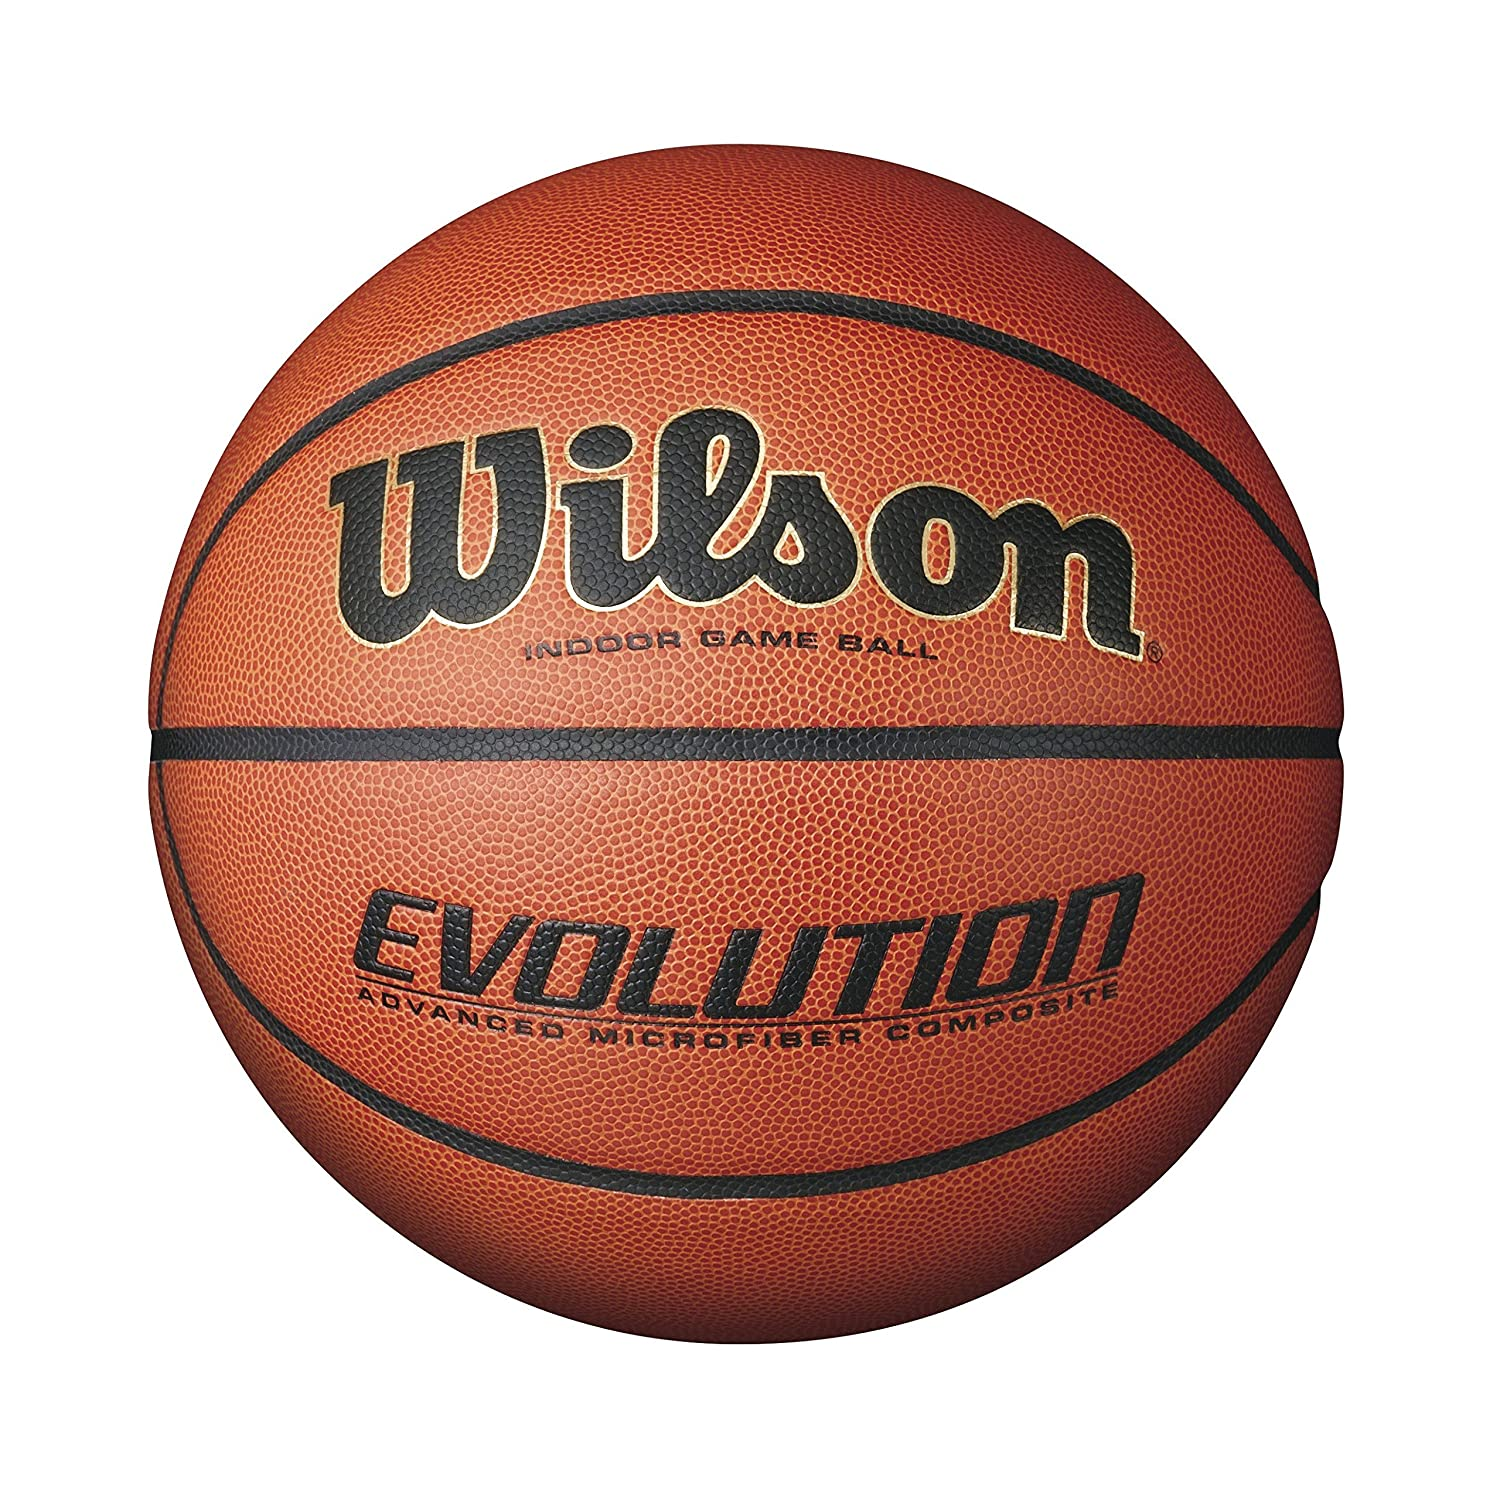 Game on closeouts sporting goods - Amazon Com Wilson Evolution Indoor Game Basketball Intermediate Size 6 Sports Outdoors